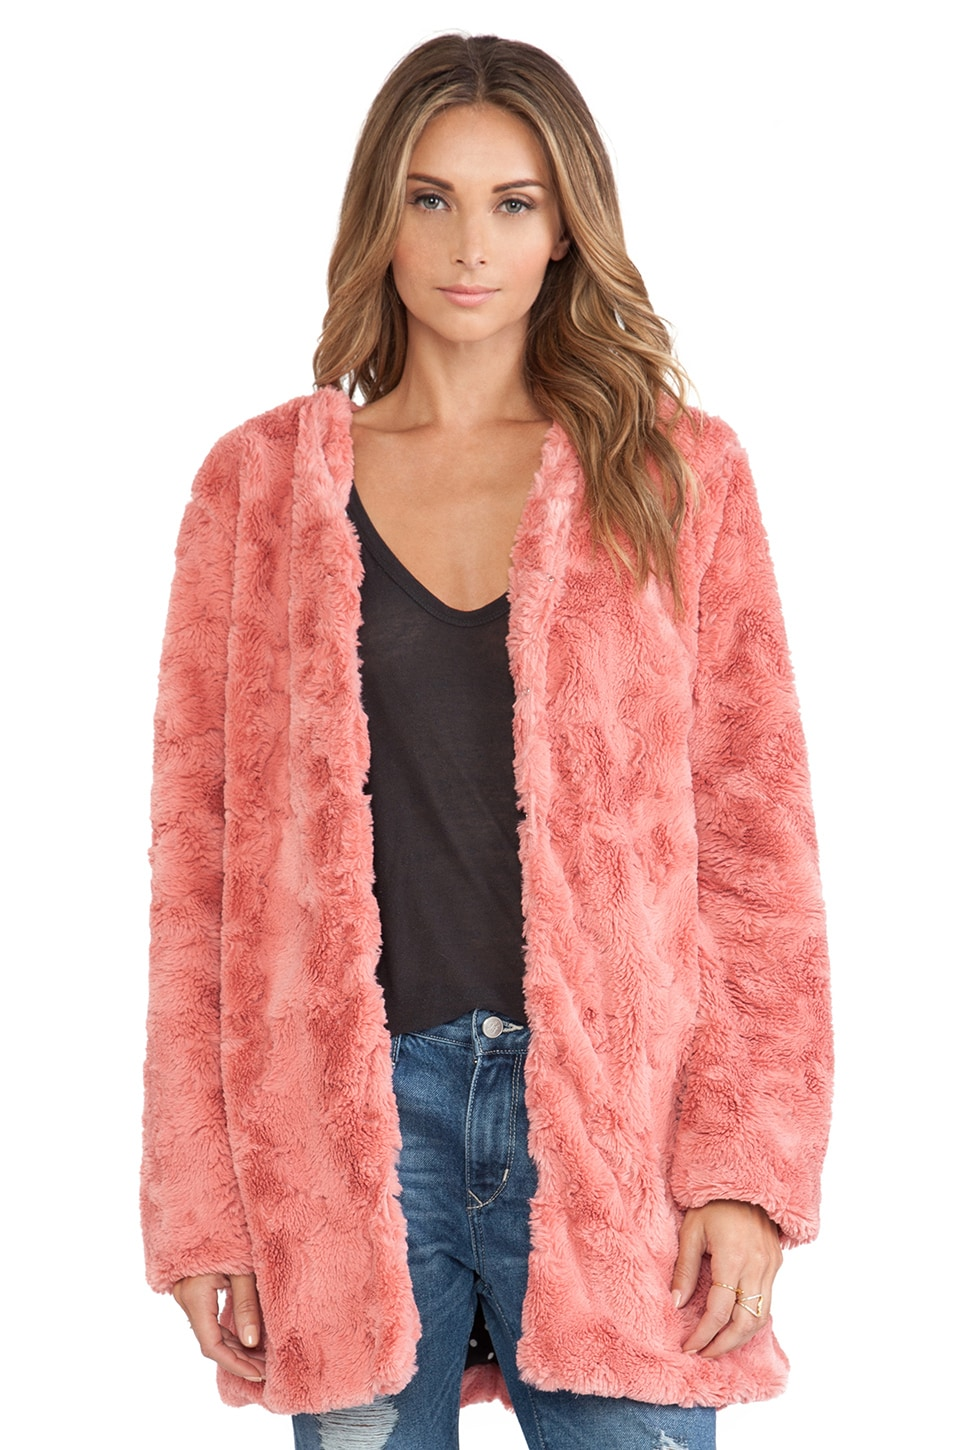 MINKPINK Powder Room Faux Fur Jacket in Blush